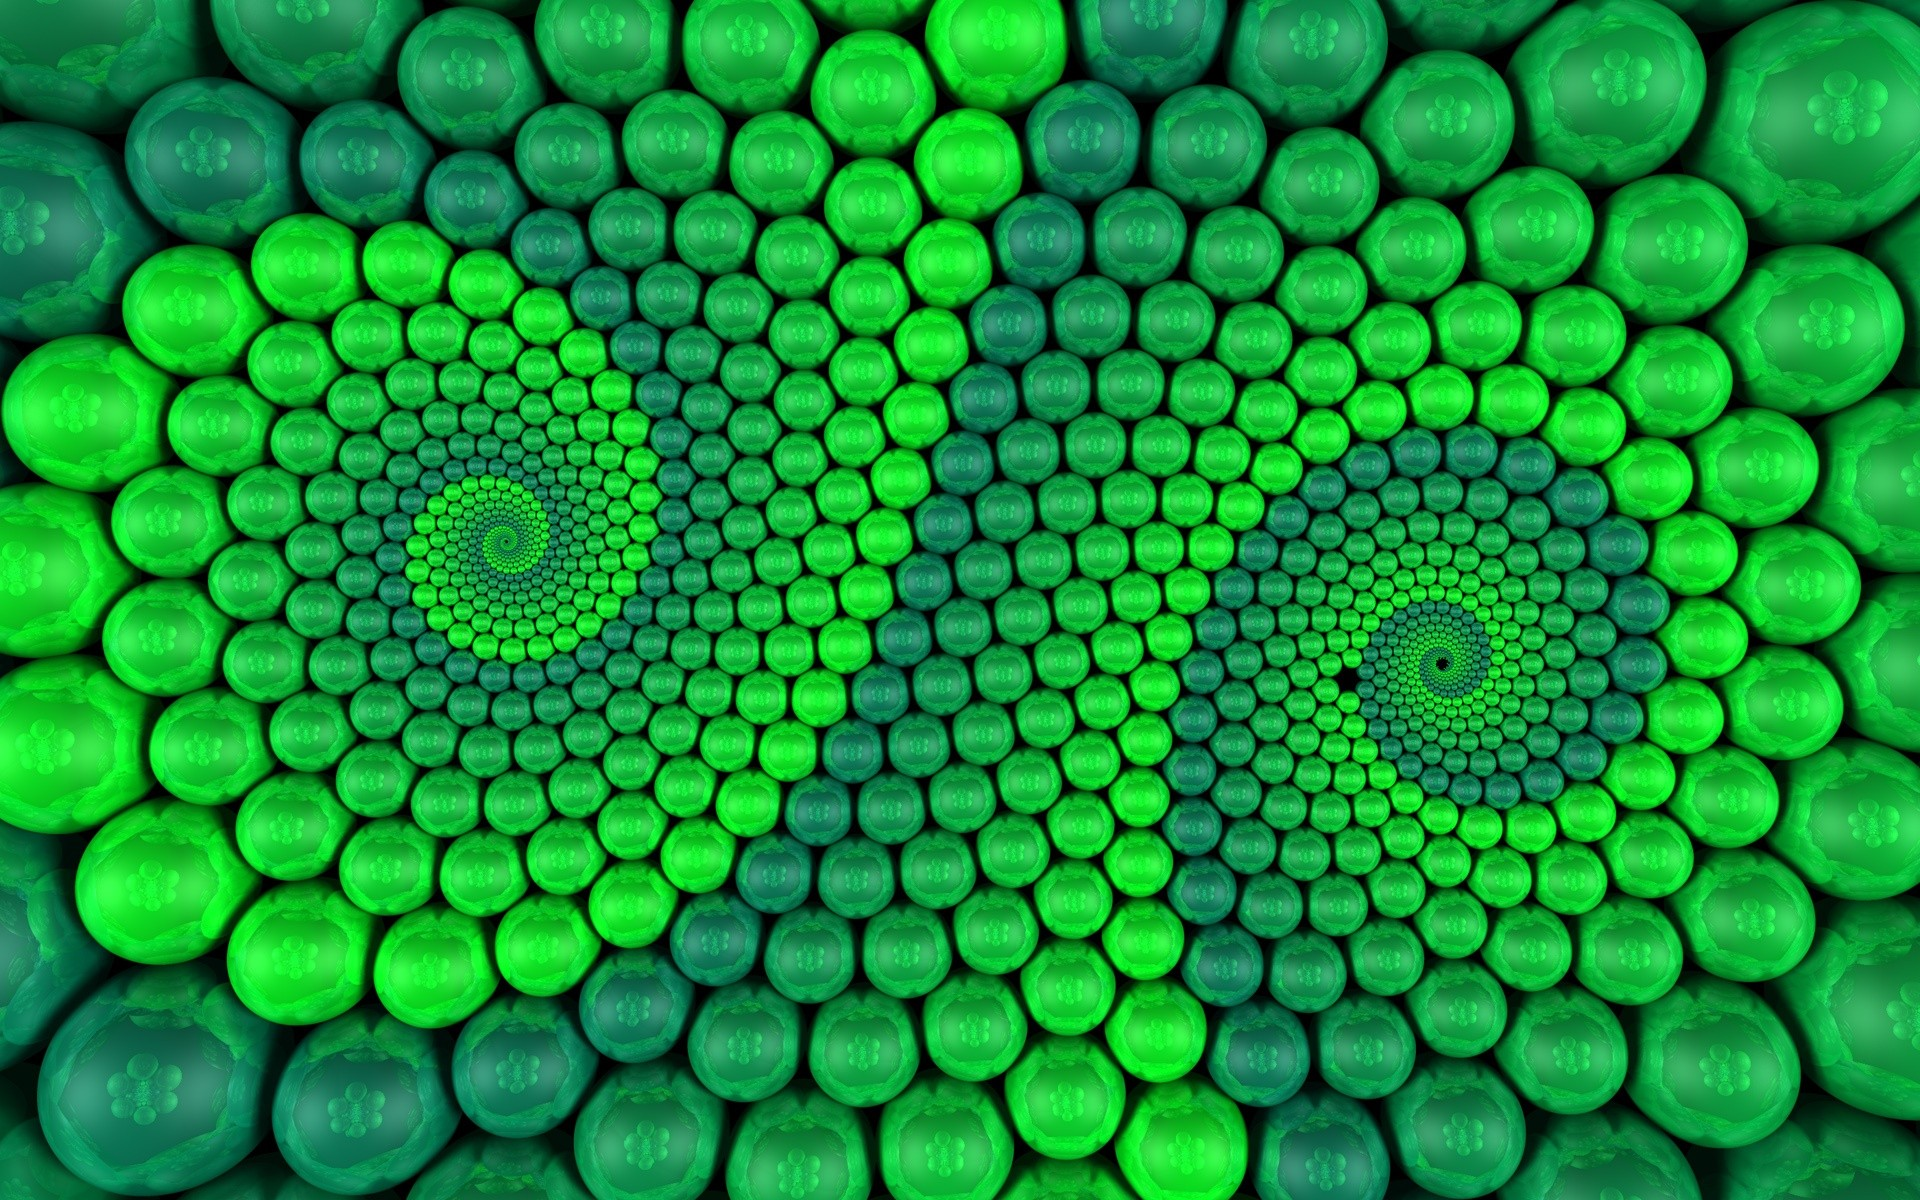 Green Abstract Patterns Wallpaper 1920x1200 193144